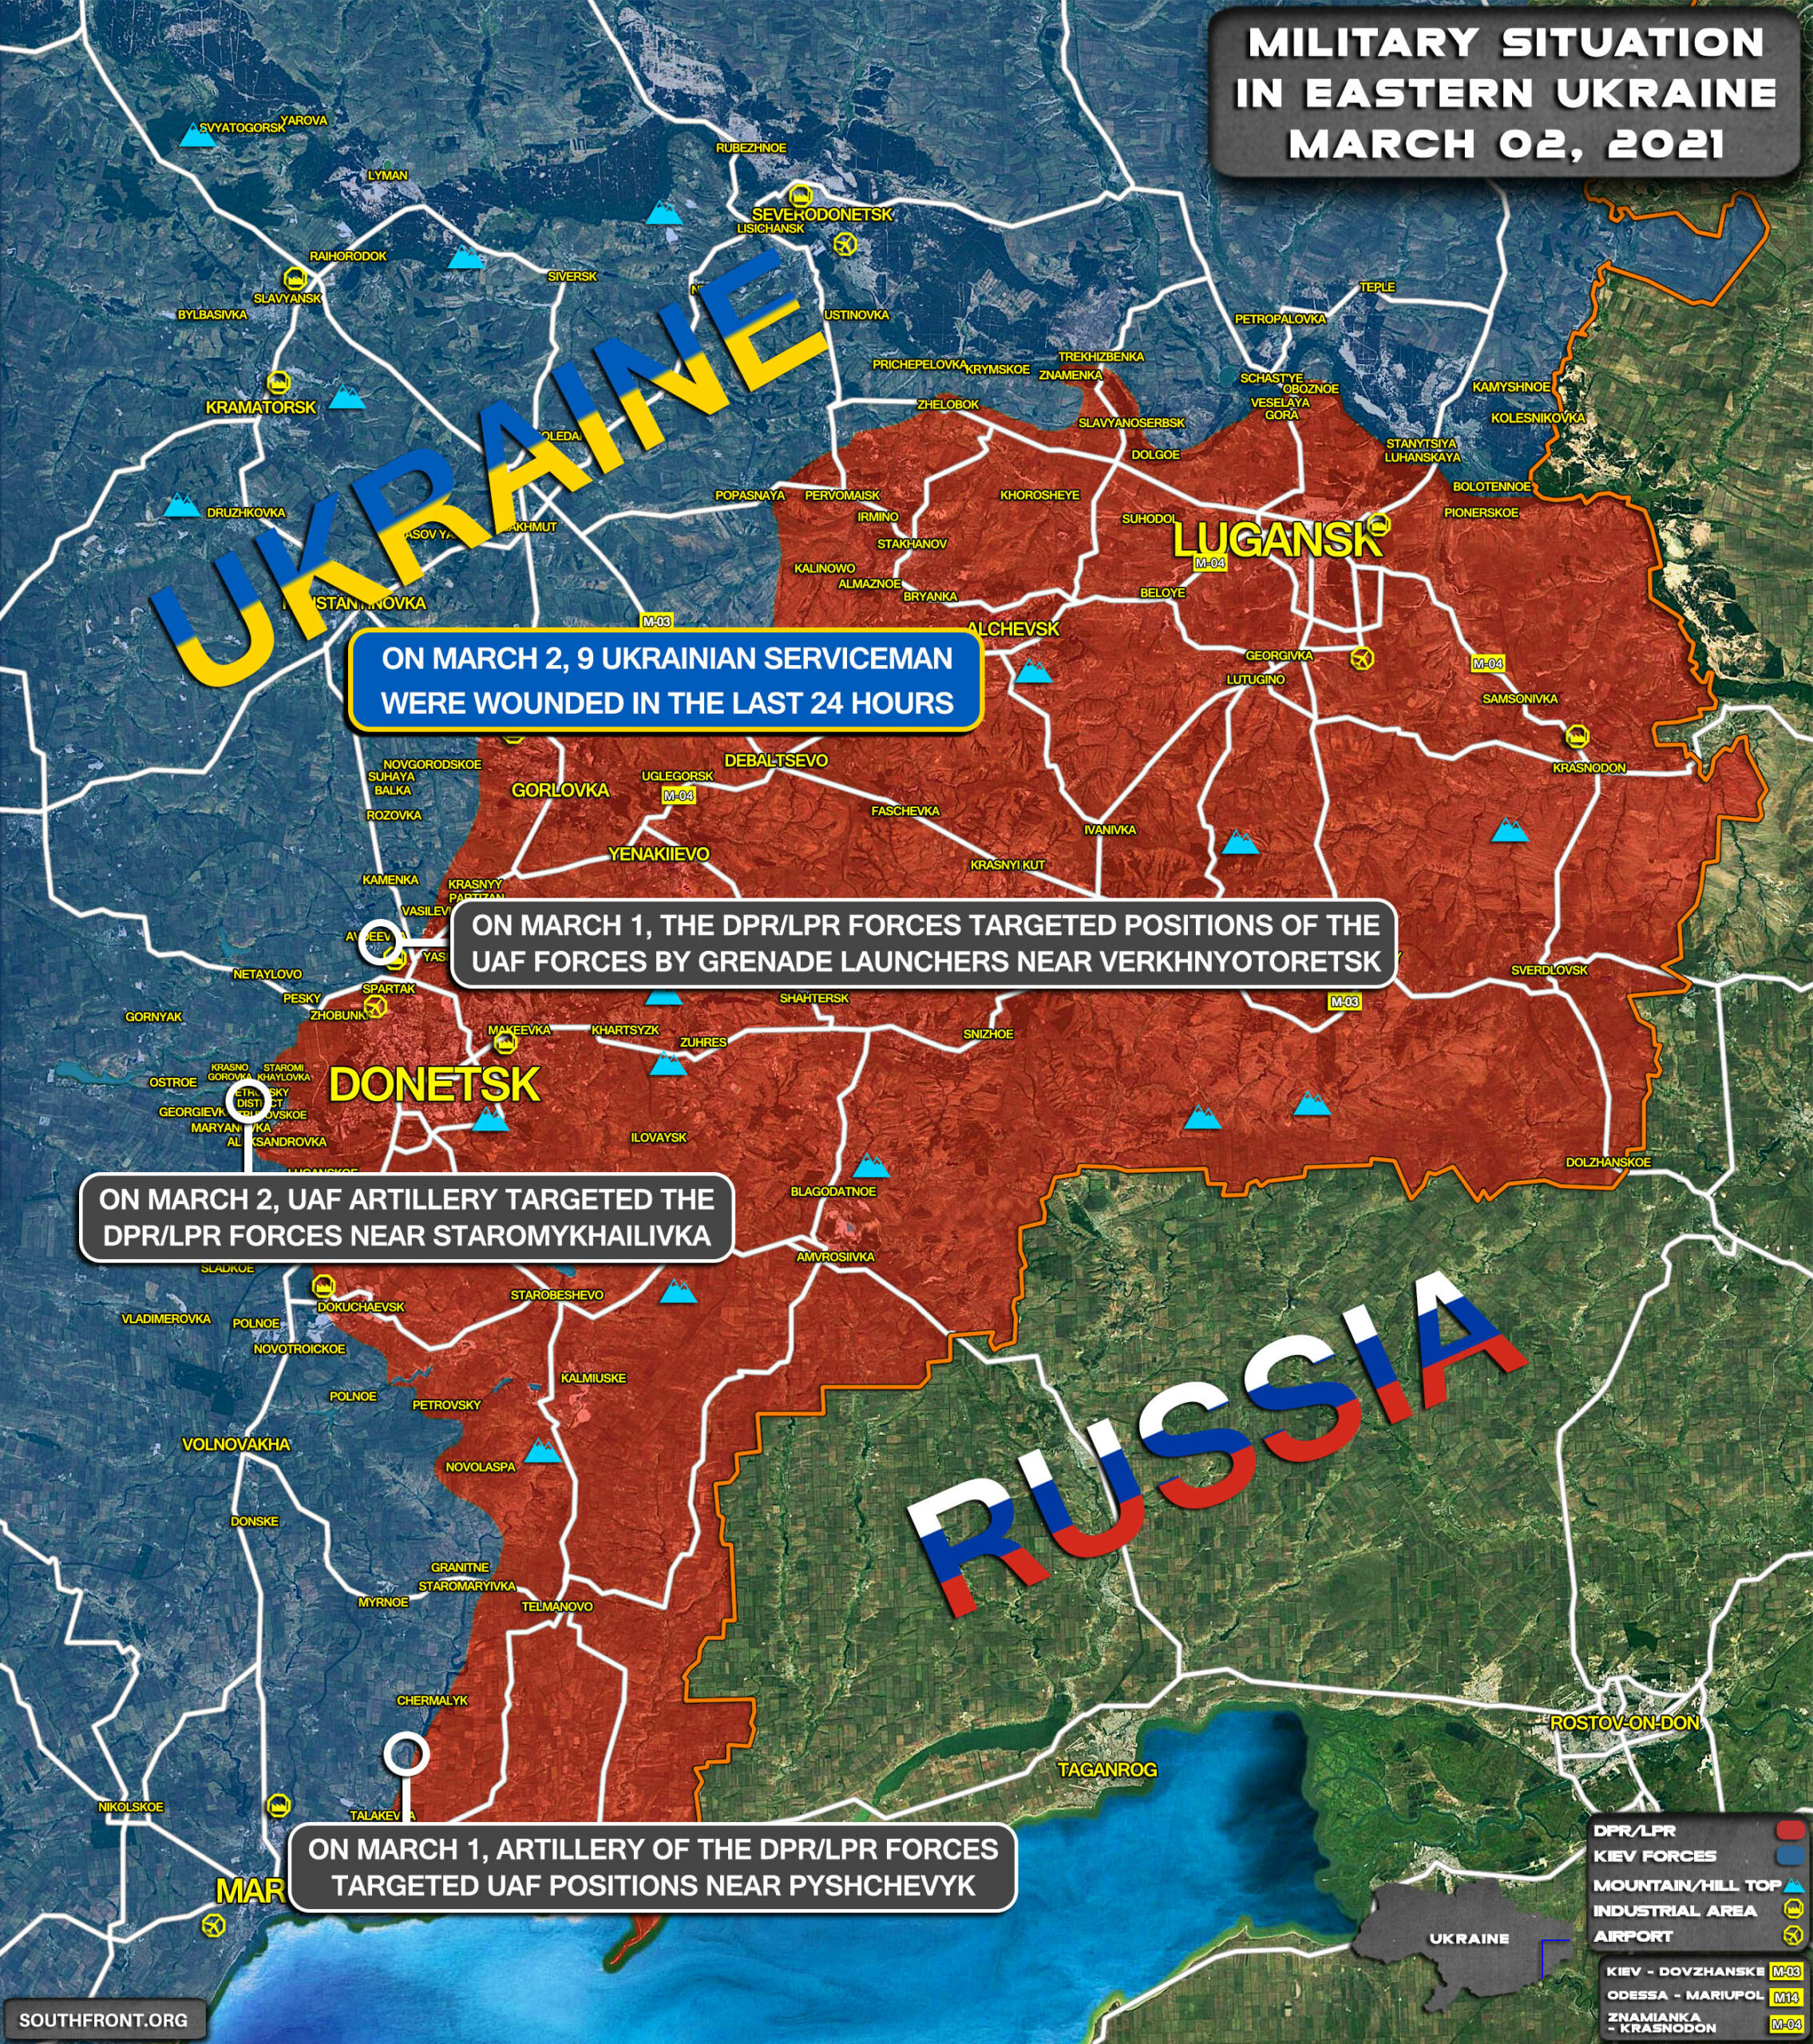 Kiev Continues Censoring Opposition, As Eastern Ukraine Escalation Nears Critical Mass